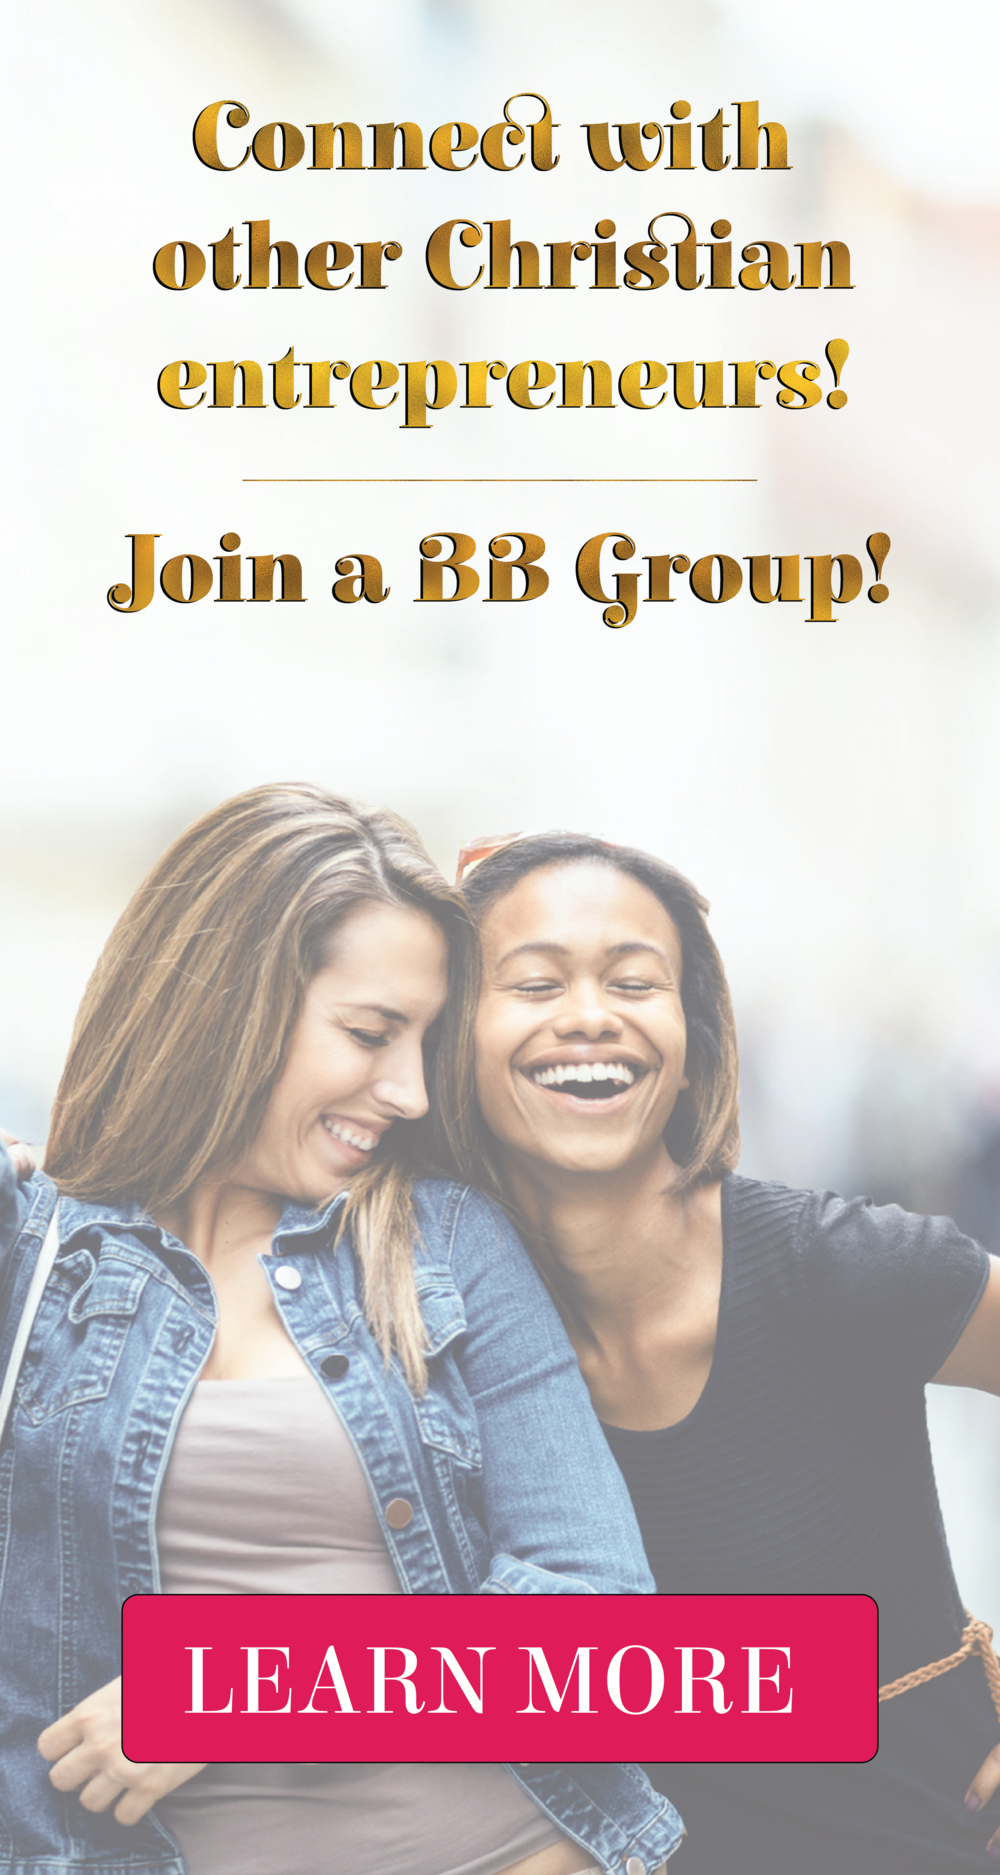 Join a BB Group